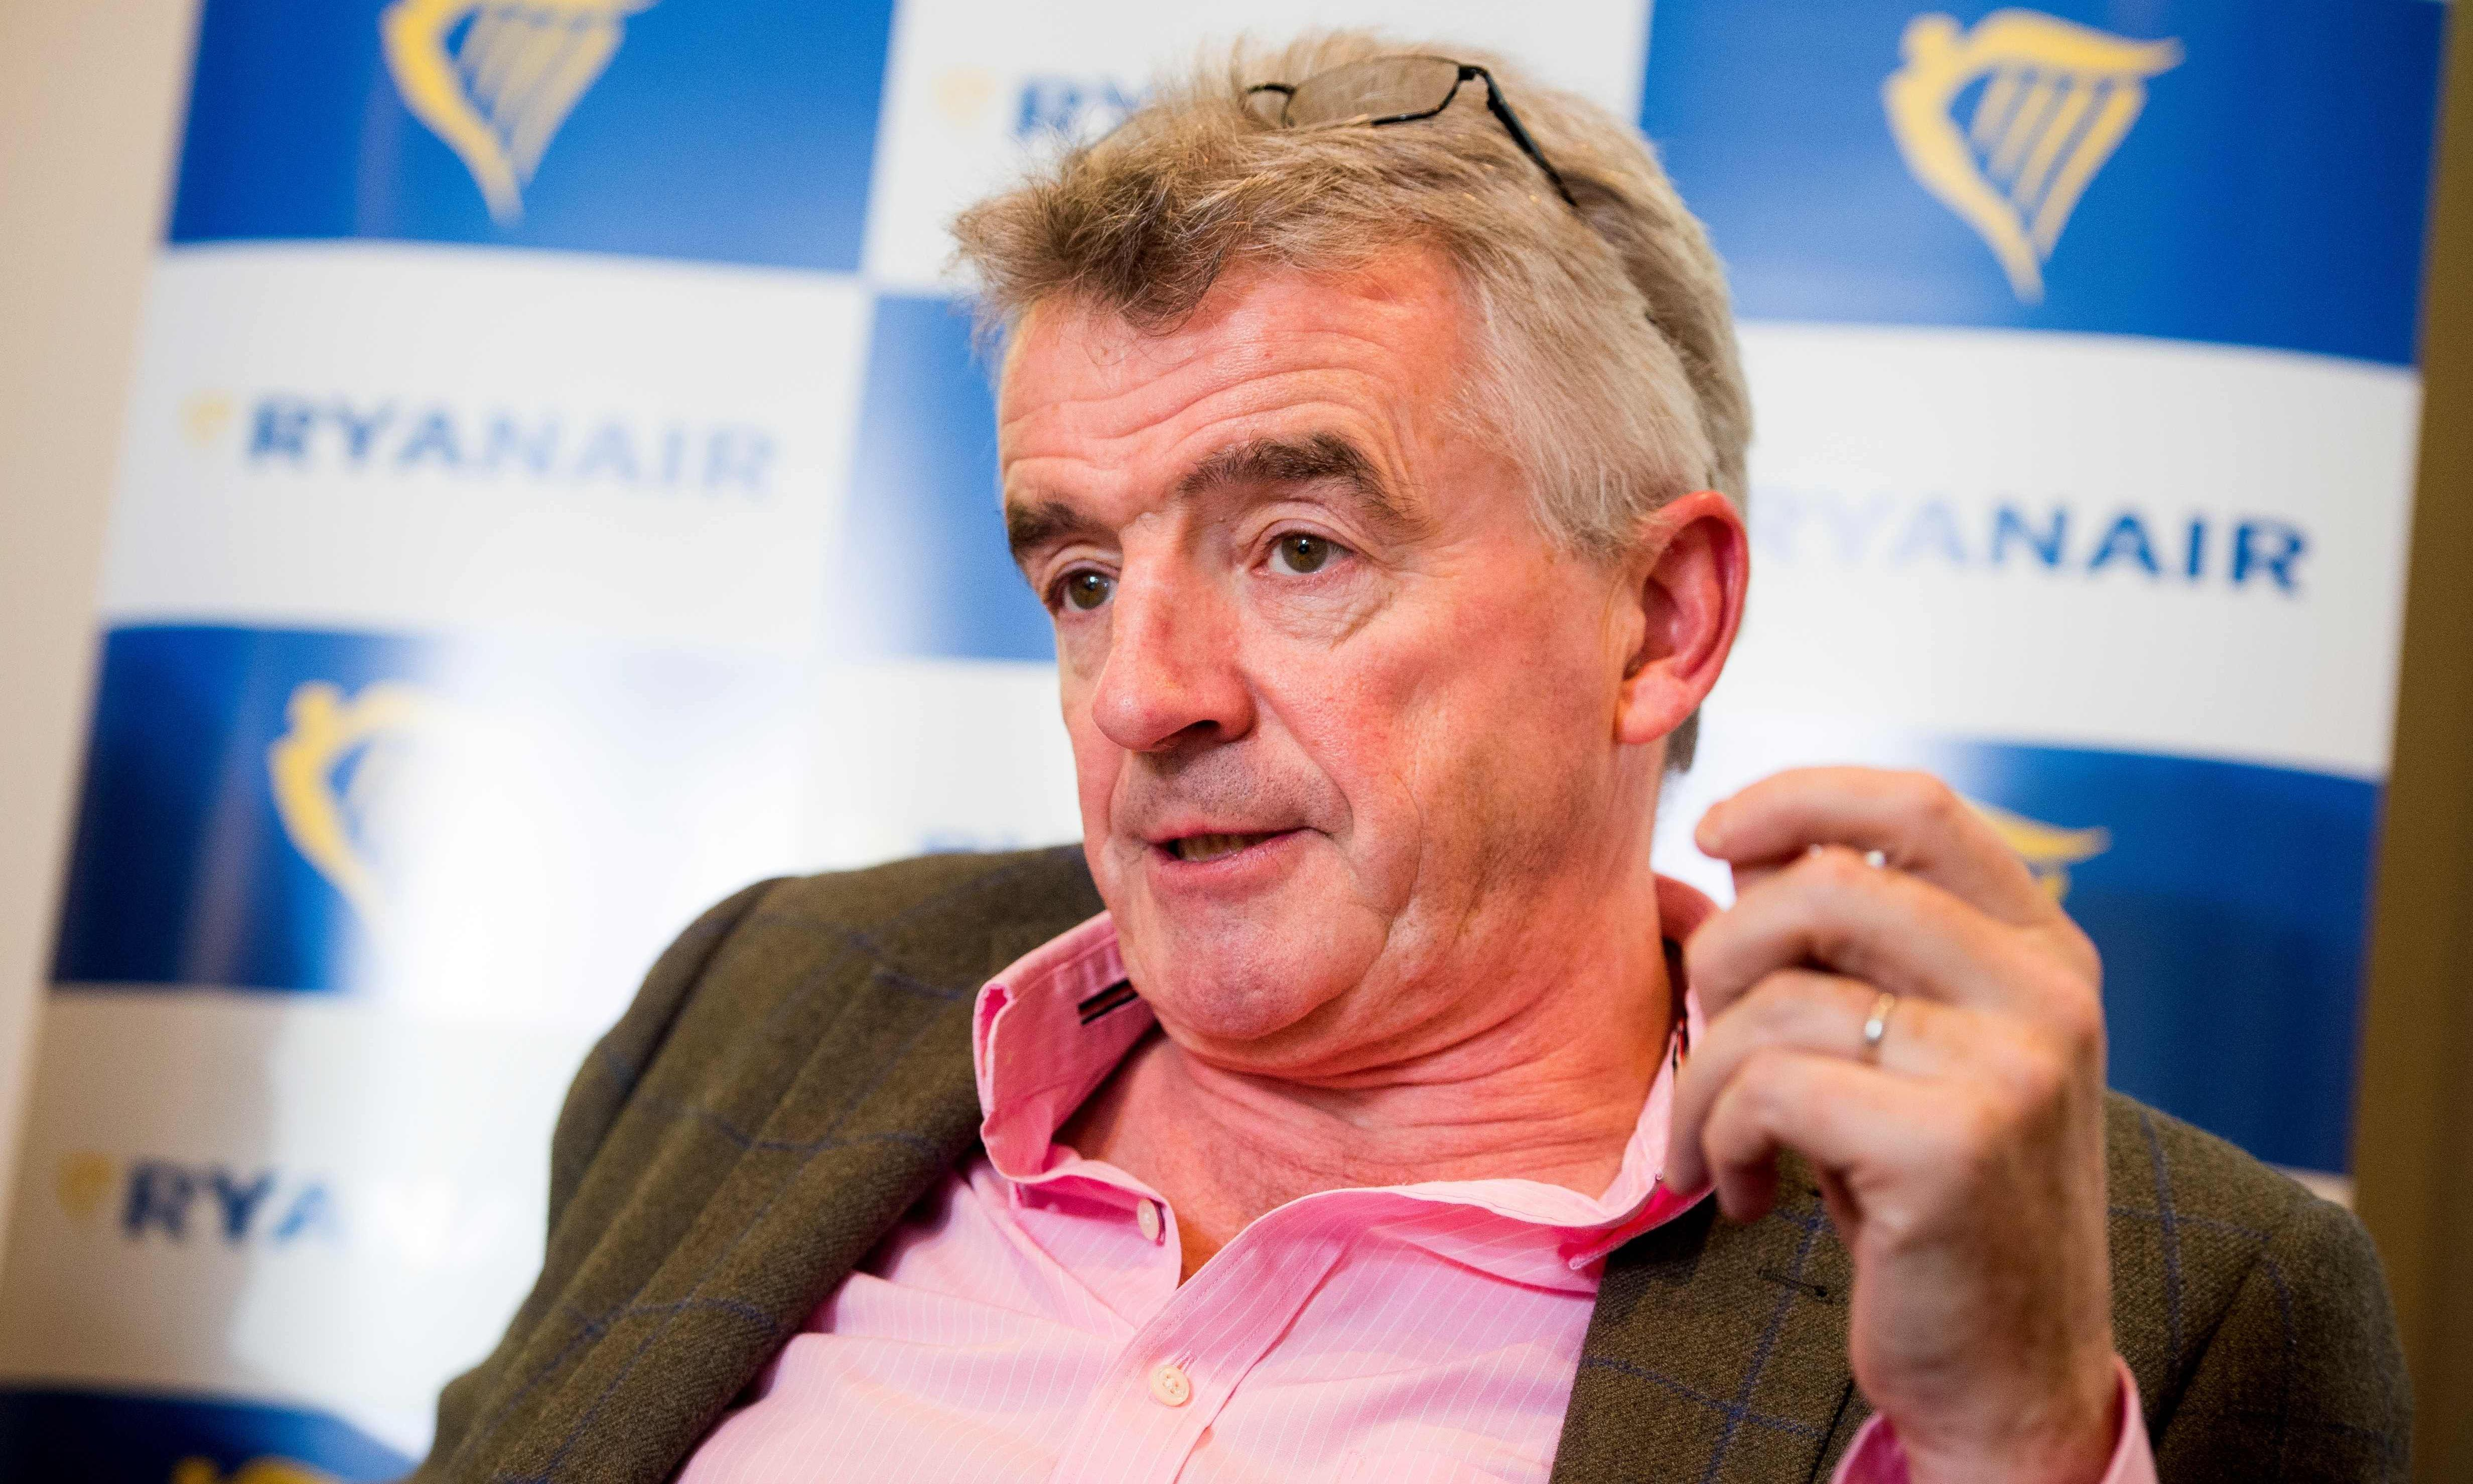 Ryanair's defence of O'Leary's €99m bonus target doesn't wash